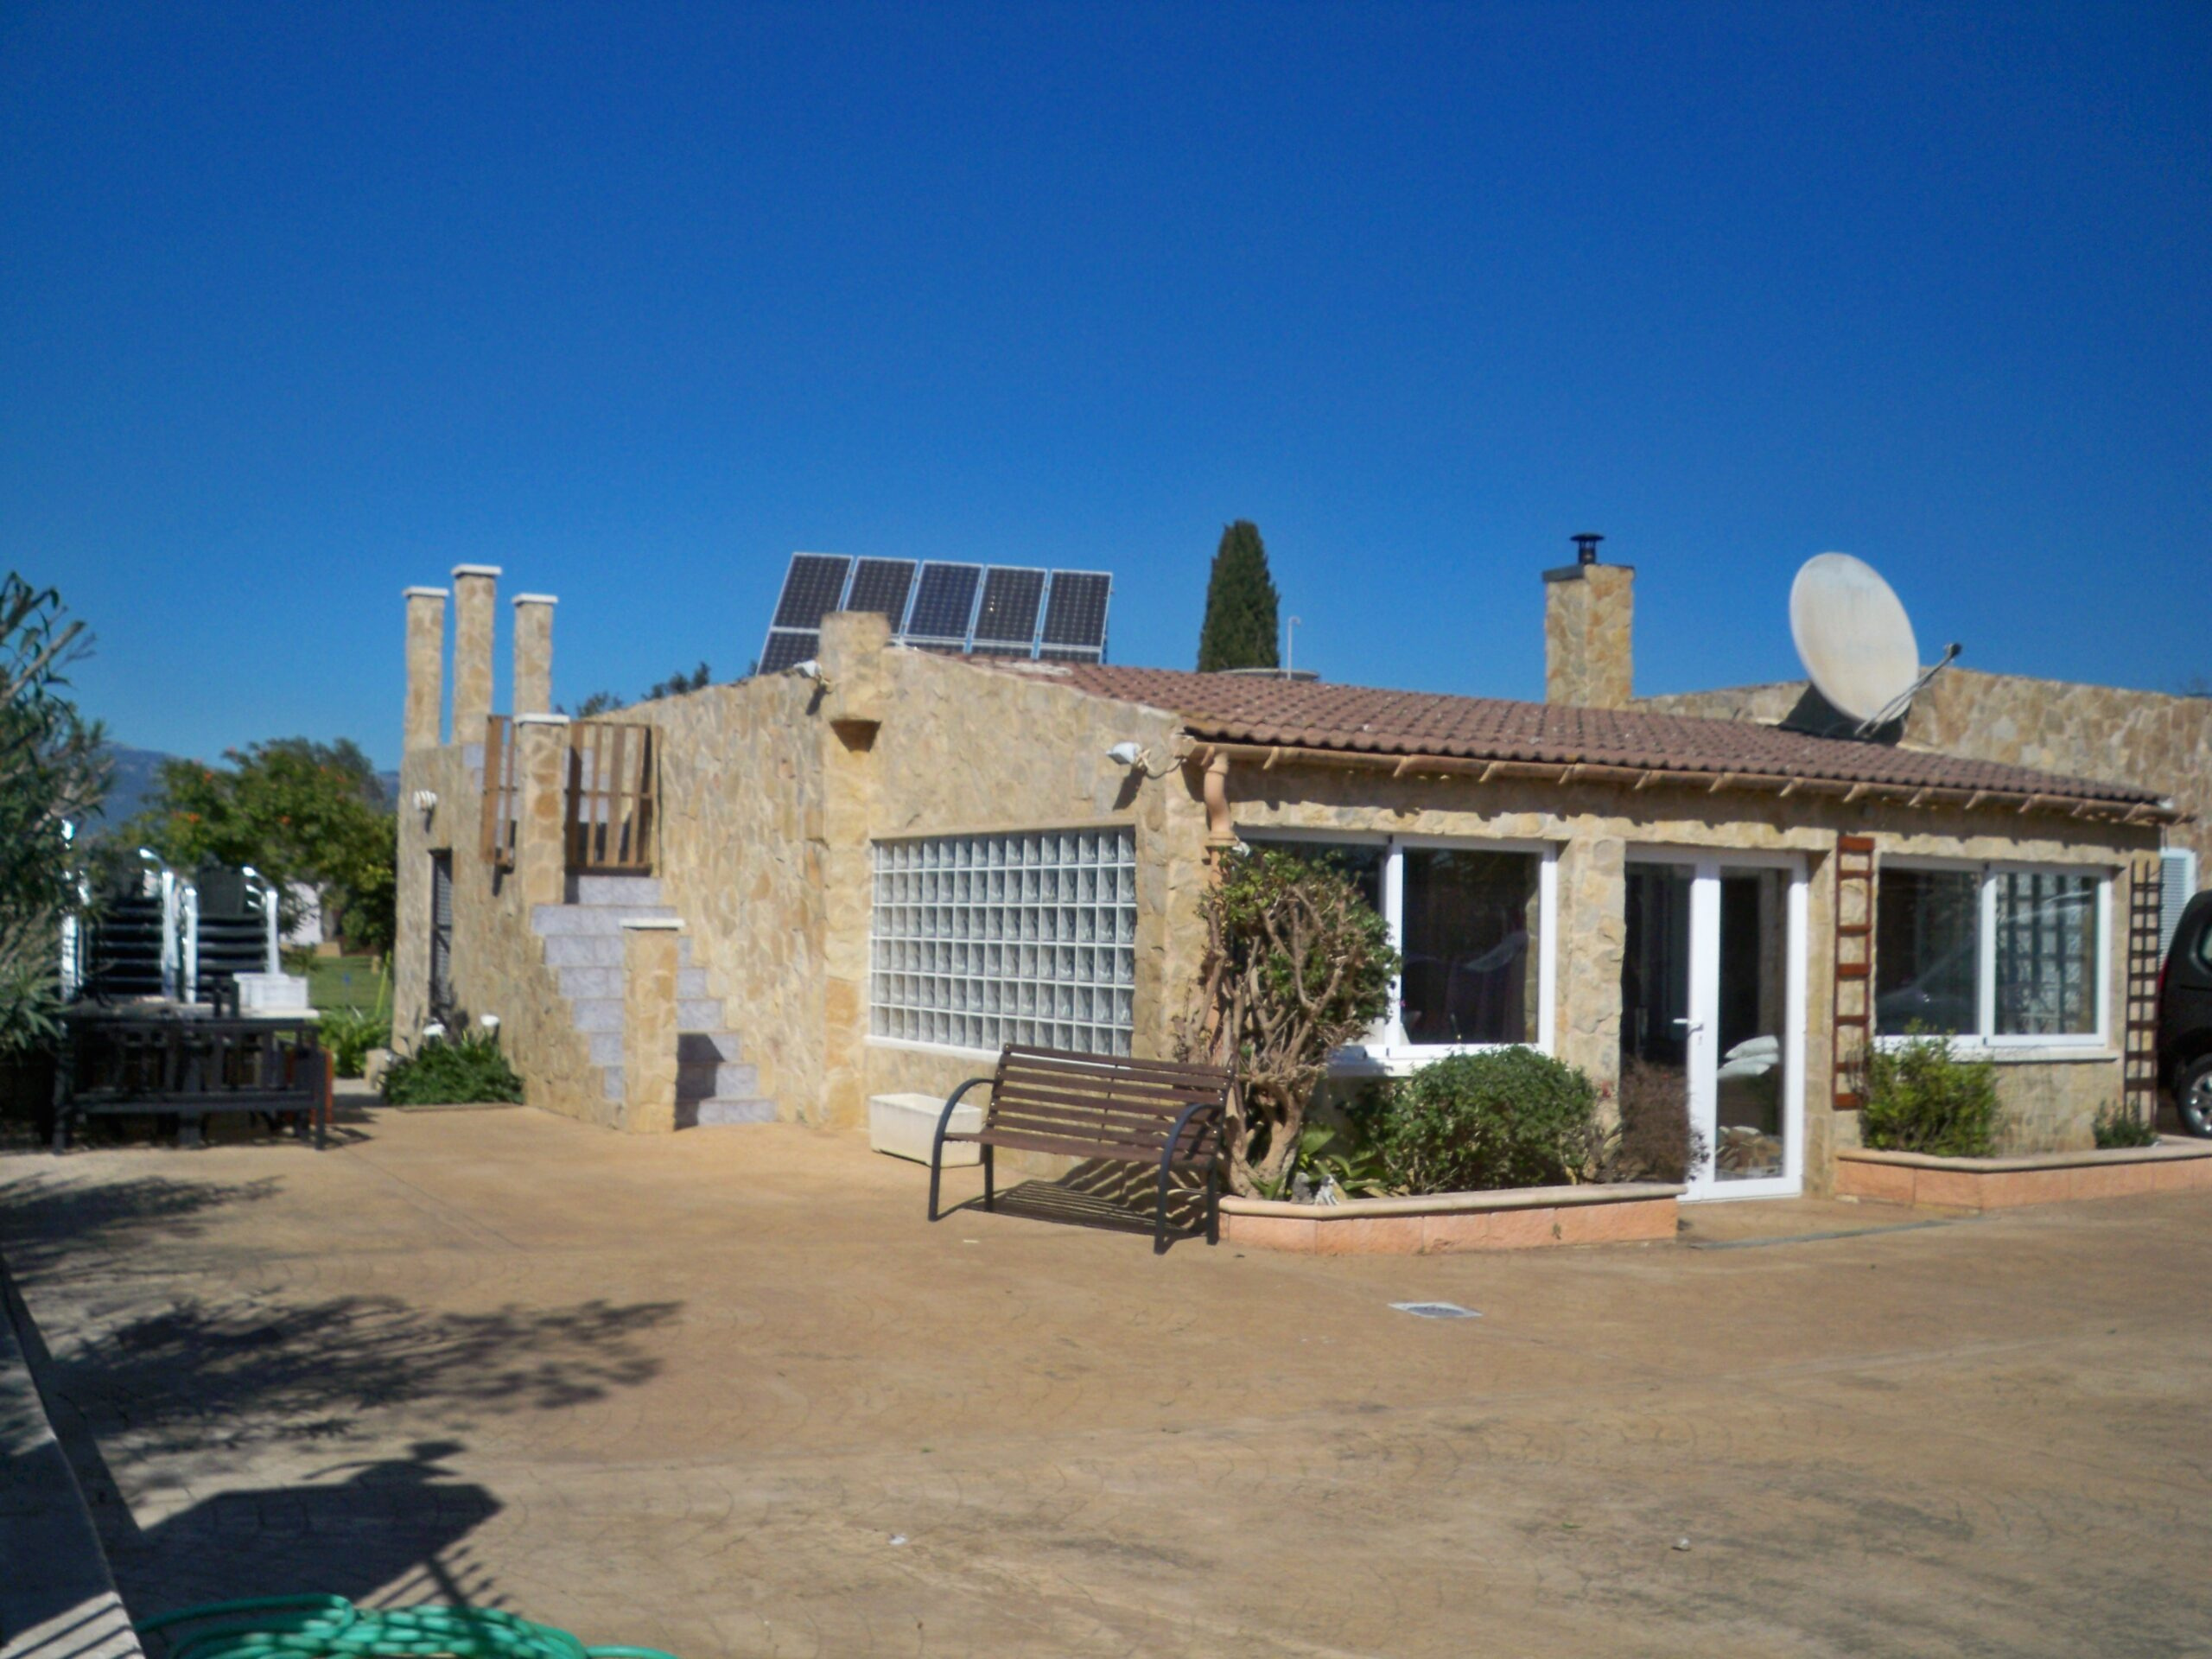 Consell - between Santa Maria and Binissalem - a small finca with pool